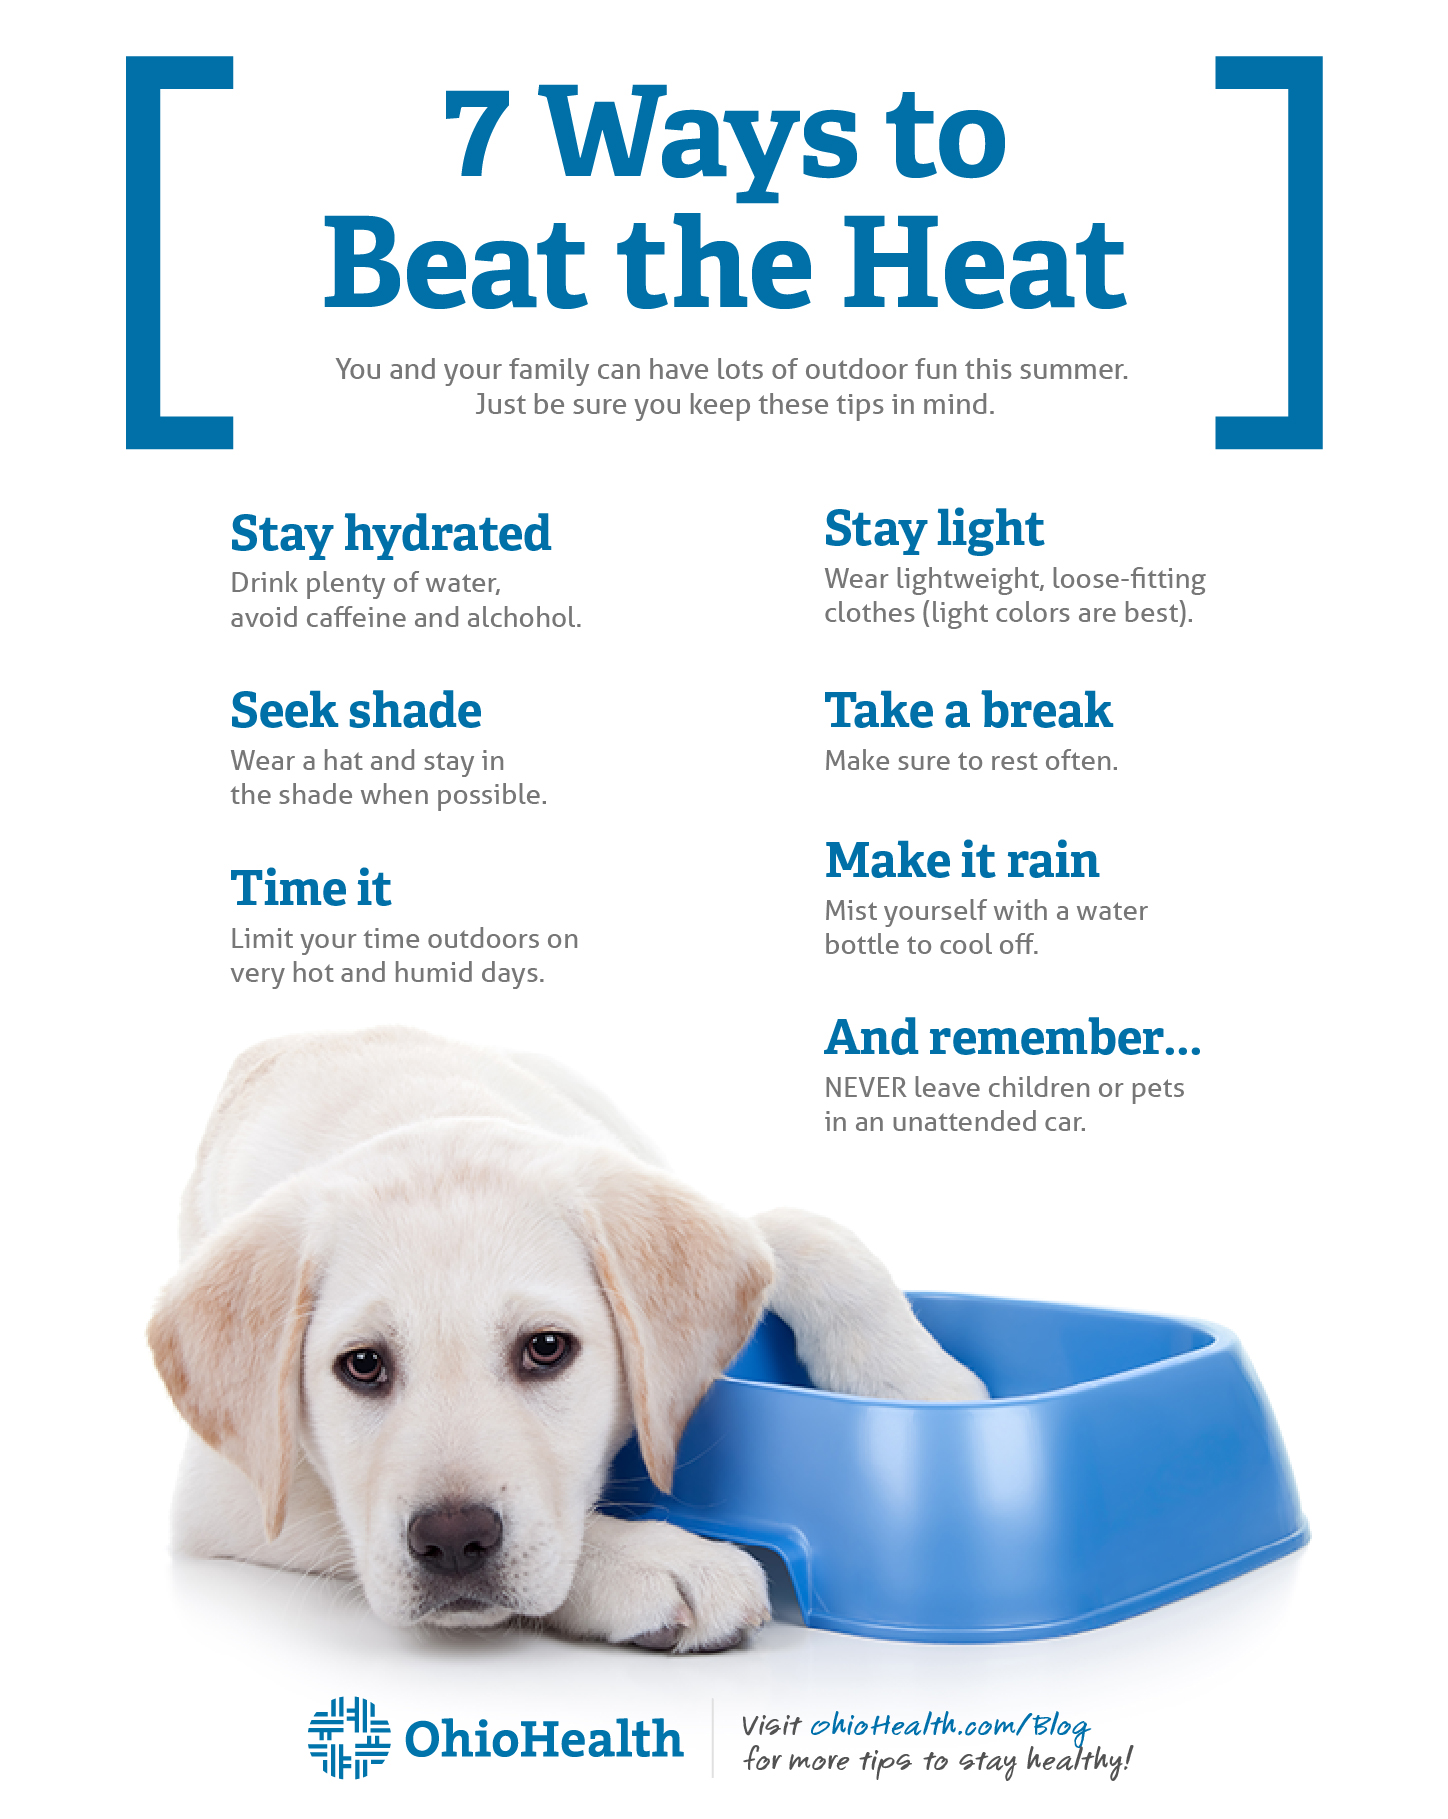 Infographic depicting 7 safety tips for spending time outdoors in the summer heat